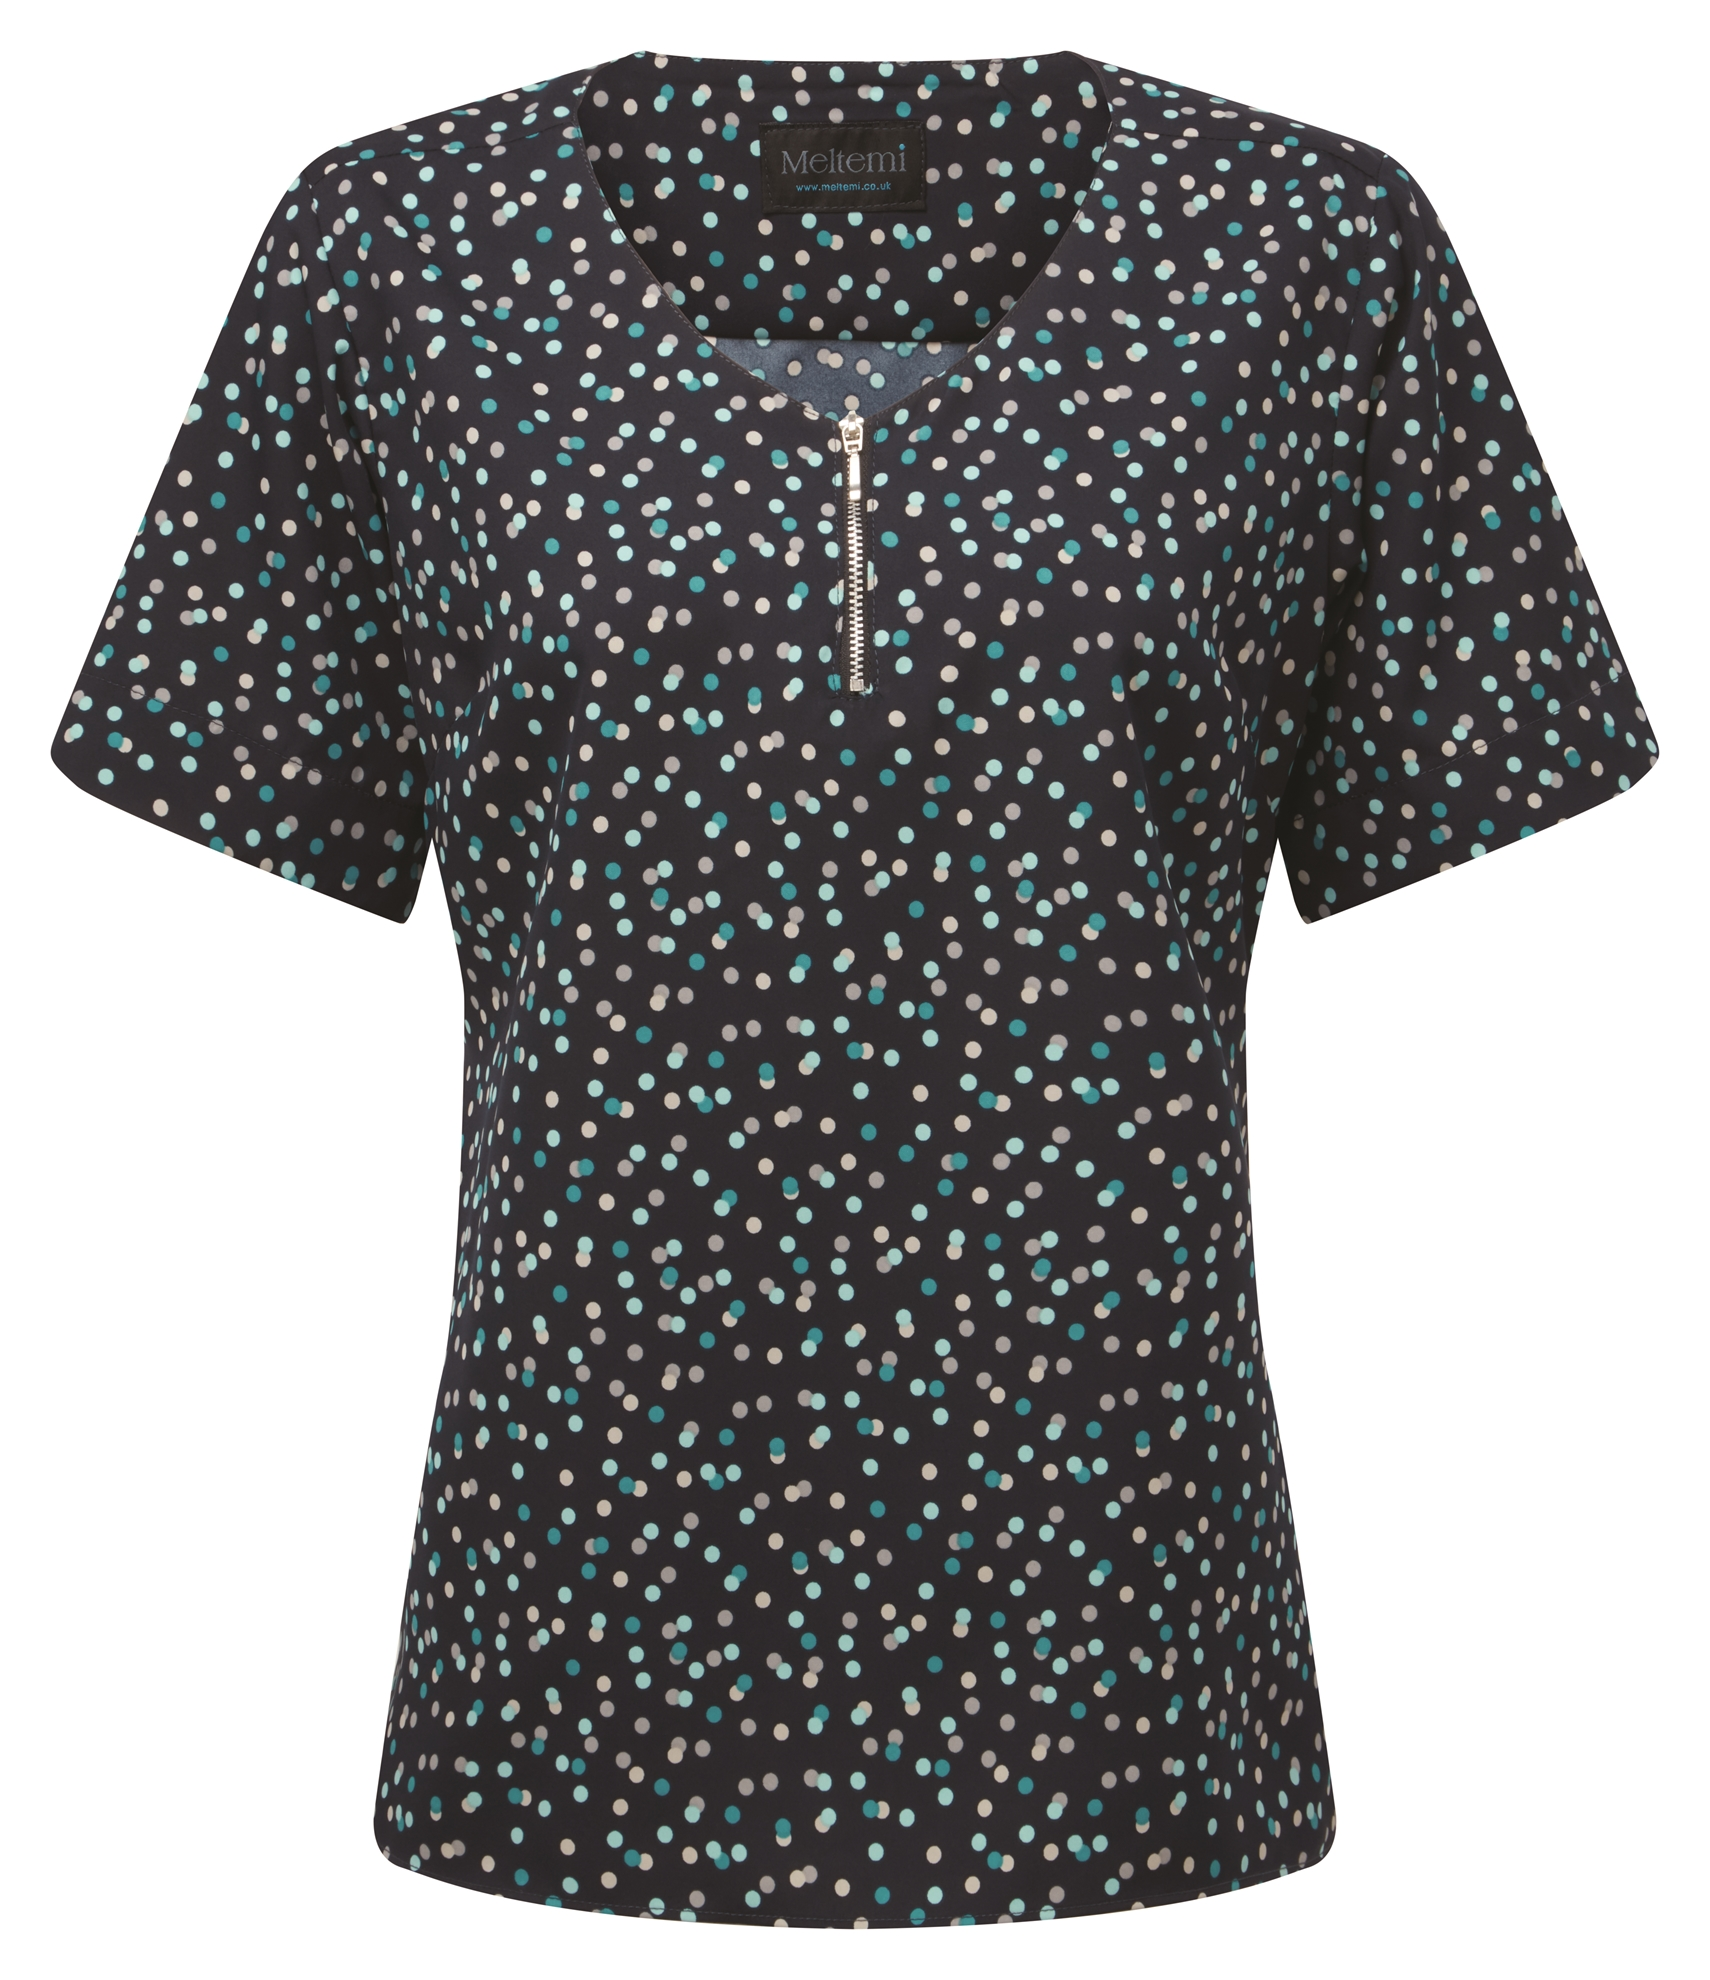 Picture of Semi-Fitted CoolWeave Blouse with Zip - Navy/Teal Darcey Print